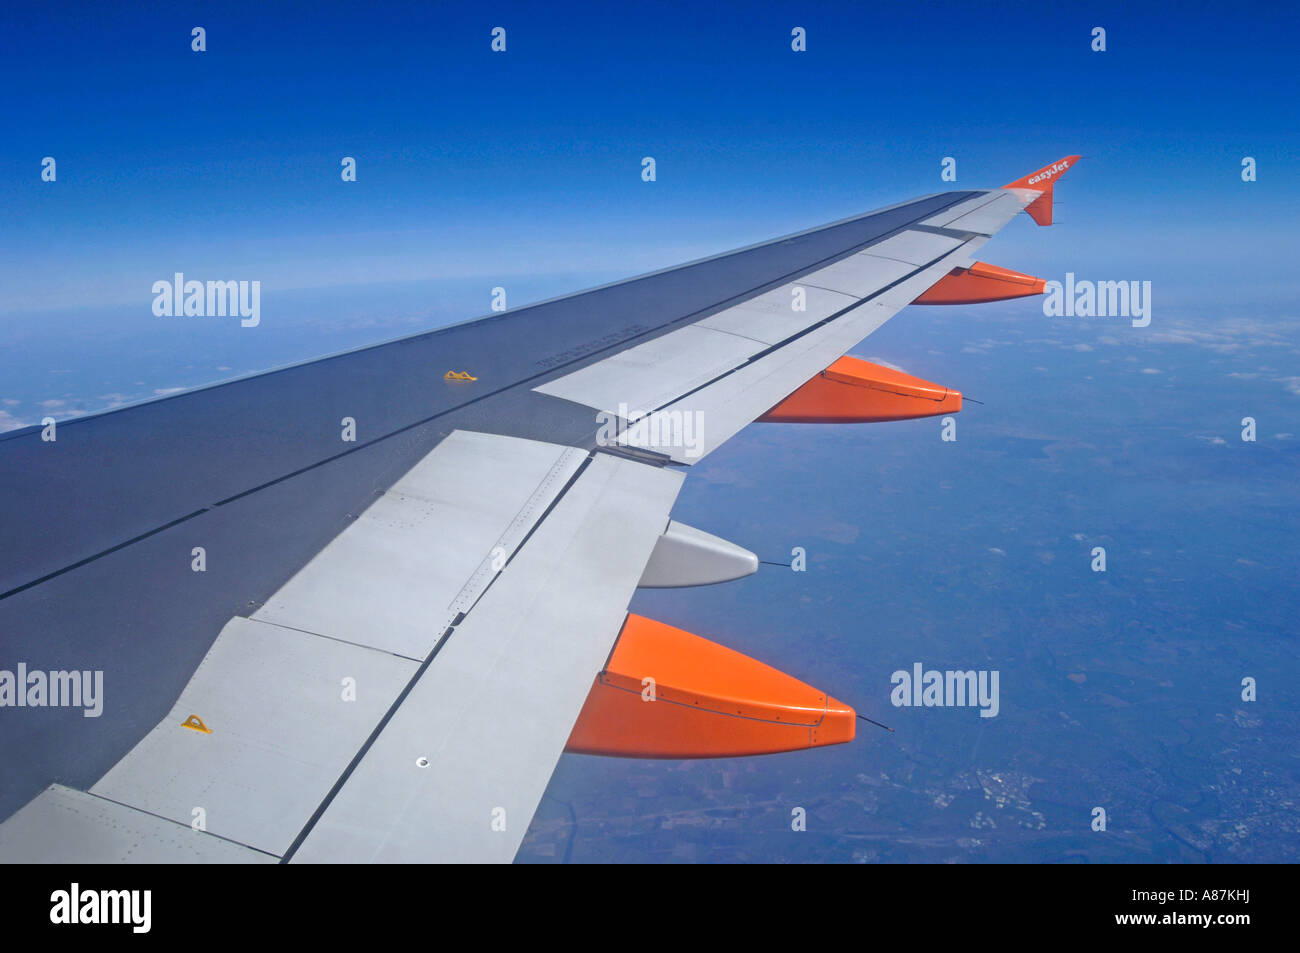 Wing of an Easyjet 737-700 at Cruising level of 33,000 feet - Stock Image